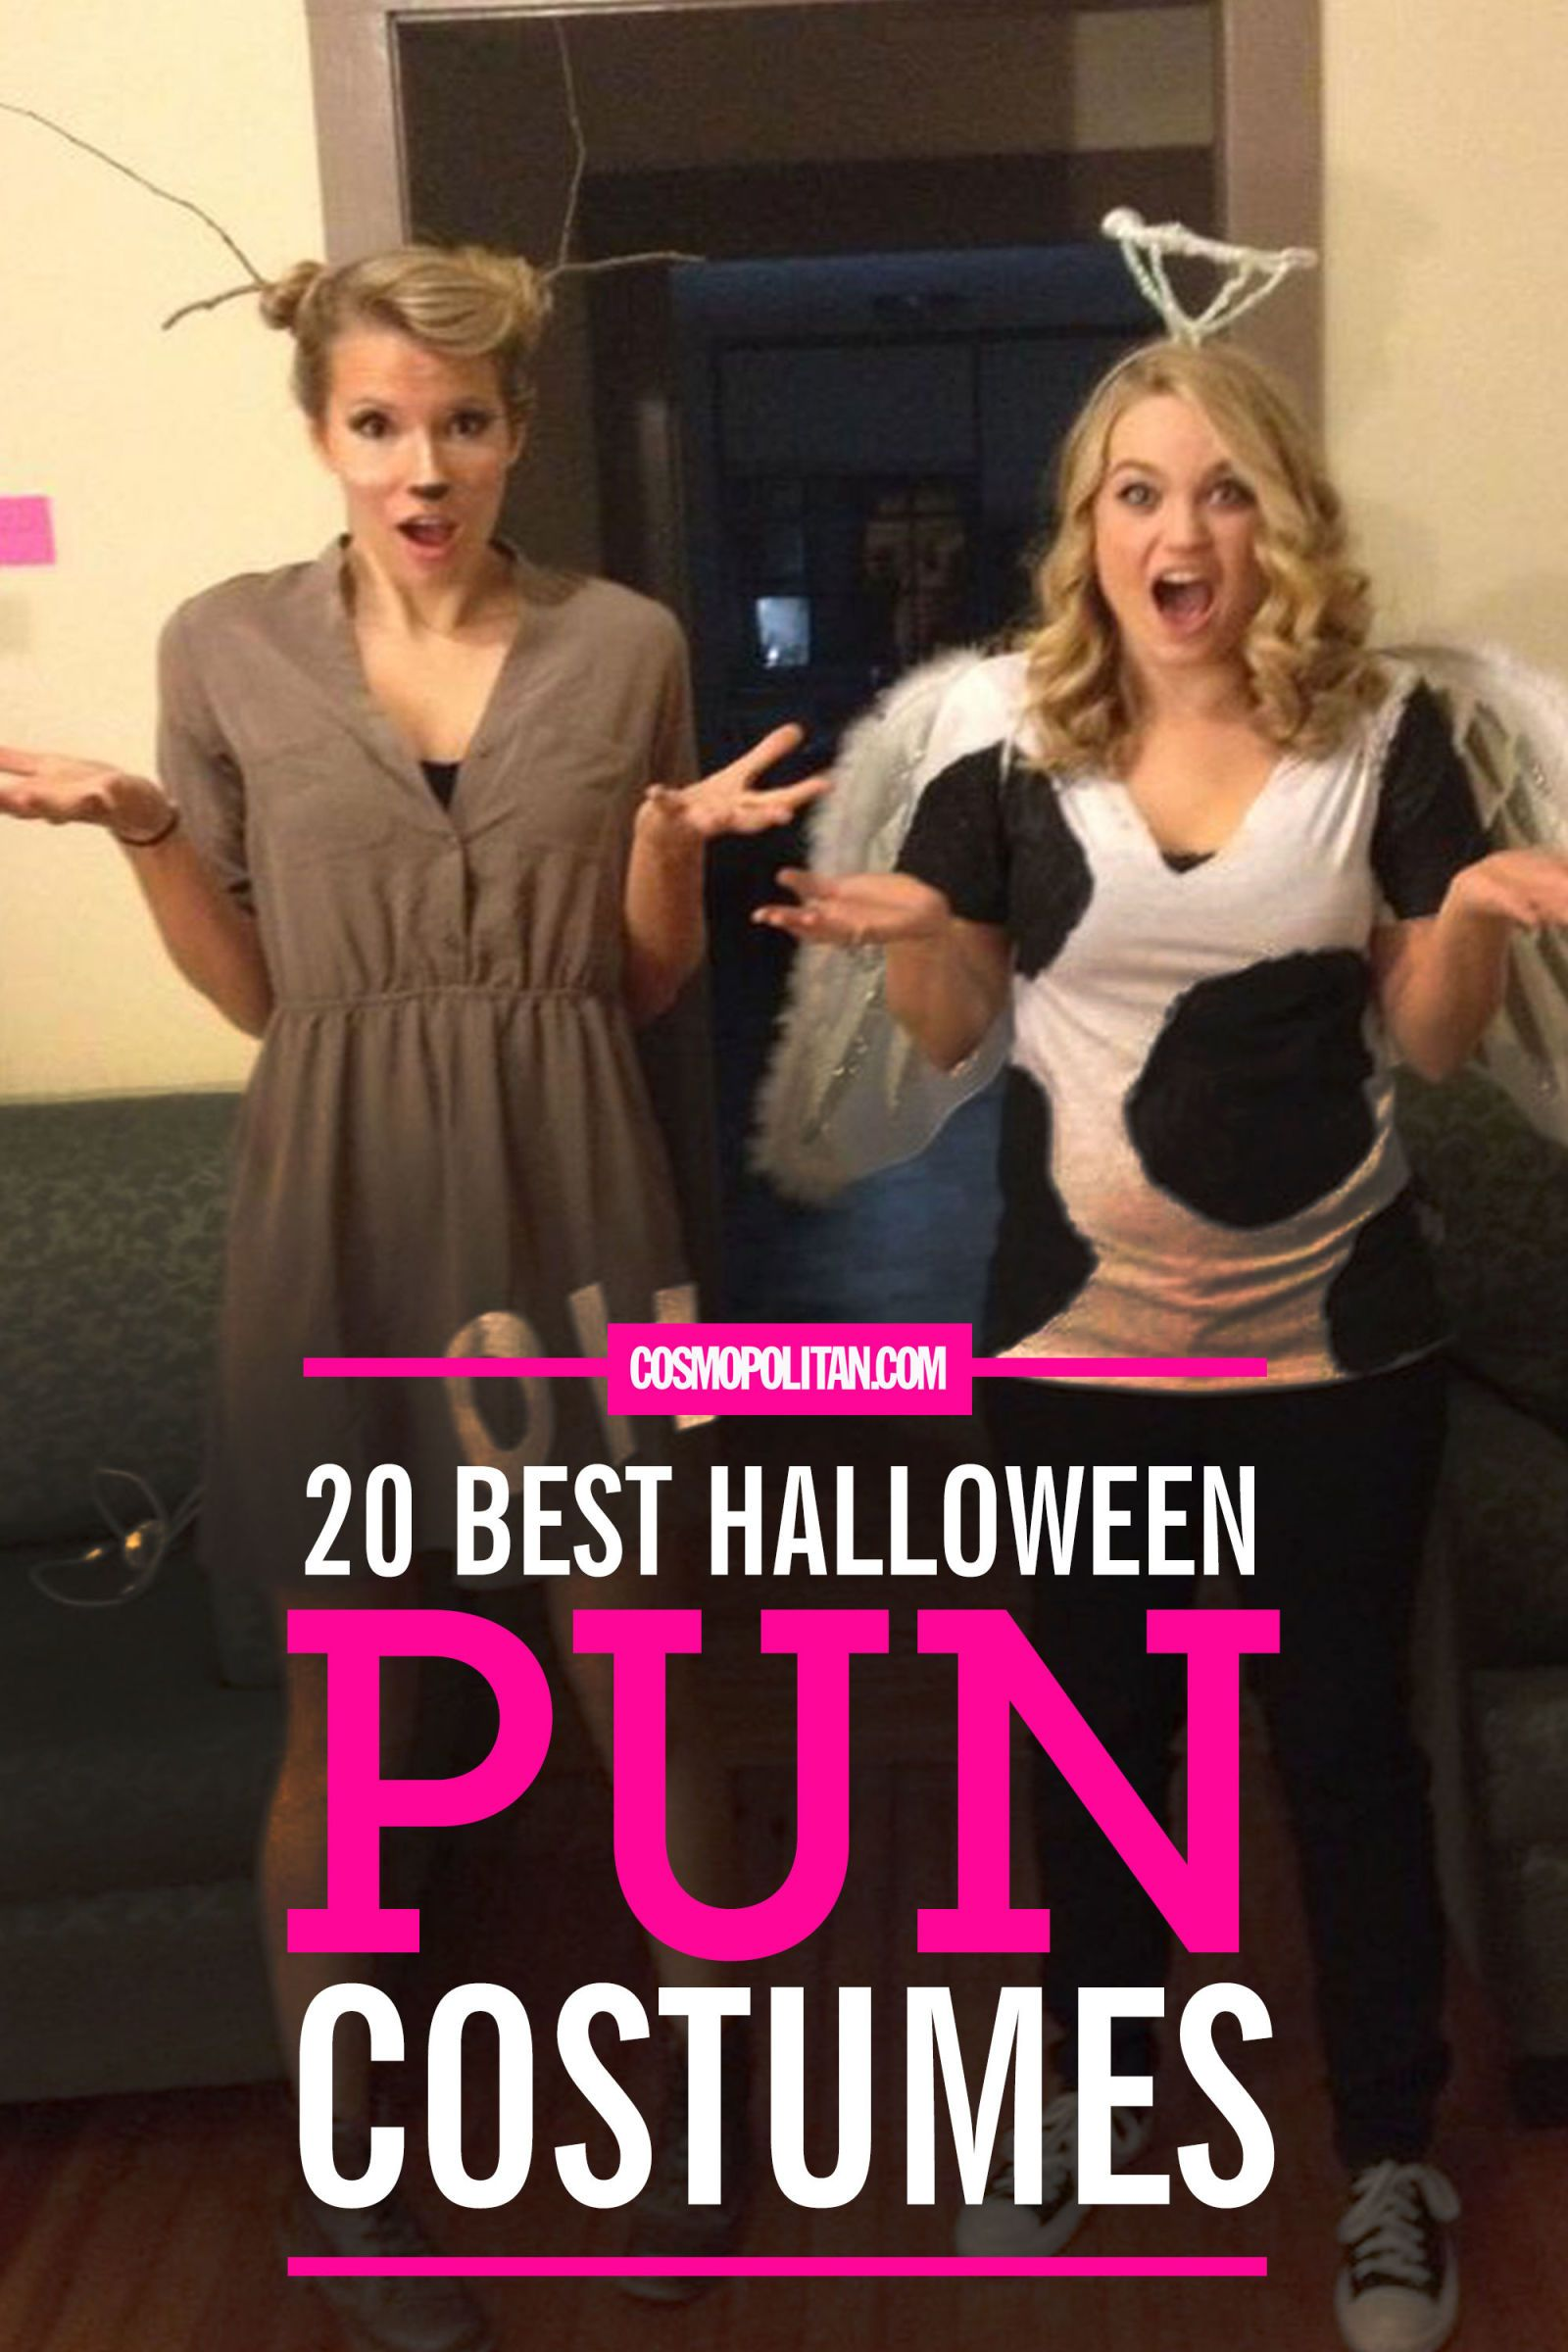 20 Best Halloween Pun Costumes More  sc 1 st  Pinterest & 39 Halloween Pun Costumes That Will Make Everyone Look Twice | Pun ...